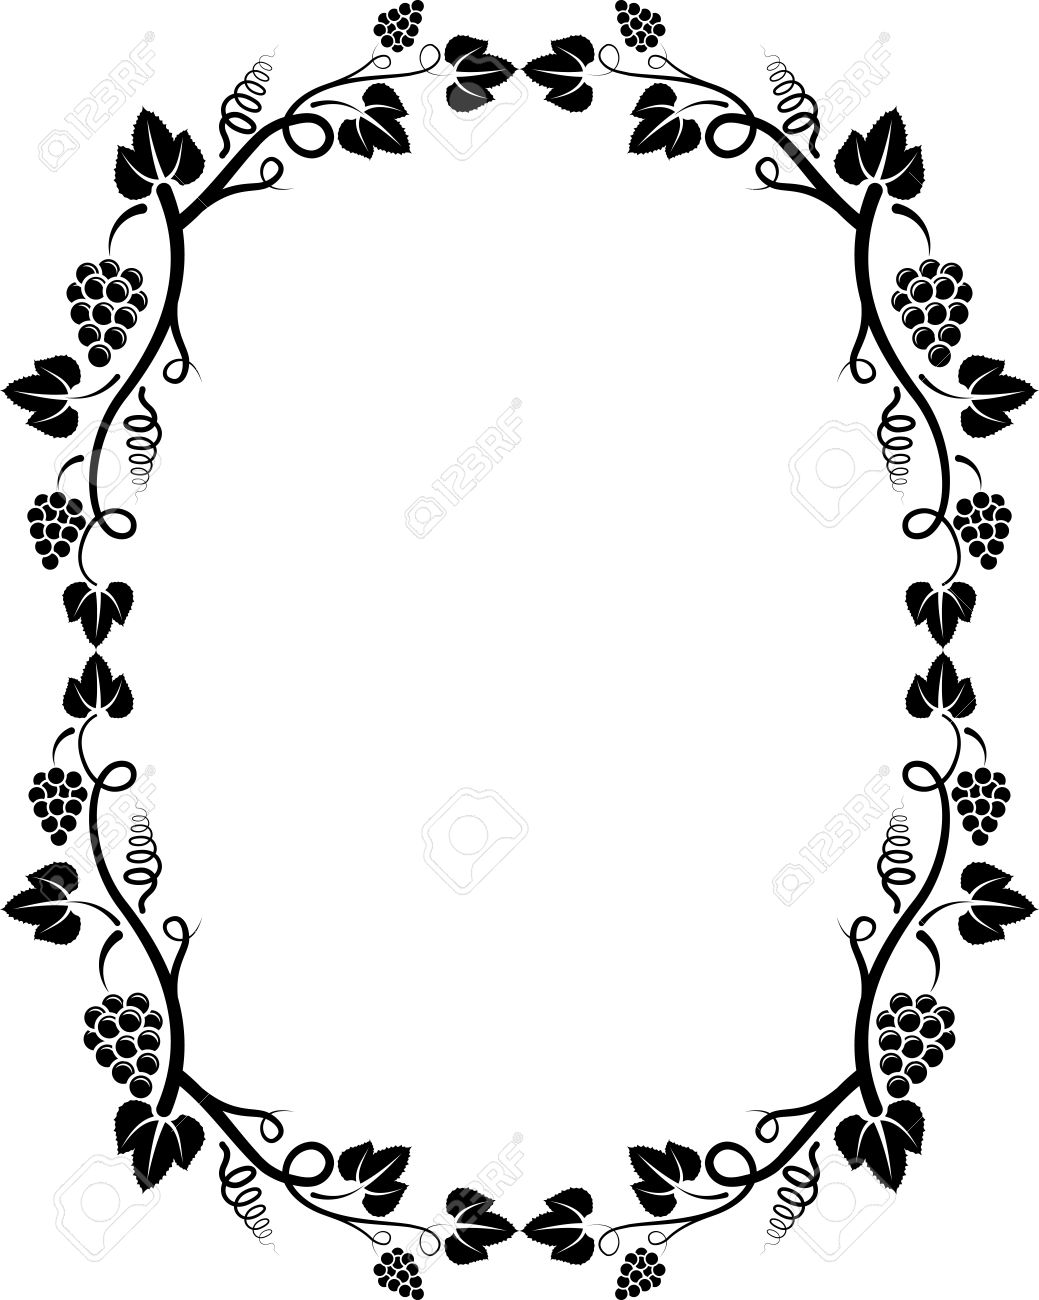 silhouette of grapevine frame royalty free cliparts vectors and rh 123rf com grapevine pictures clip art grapevine clip art free